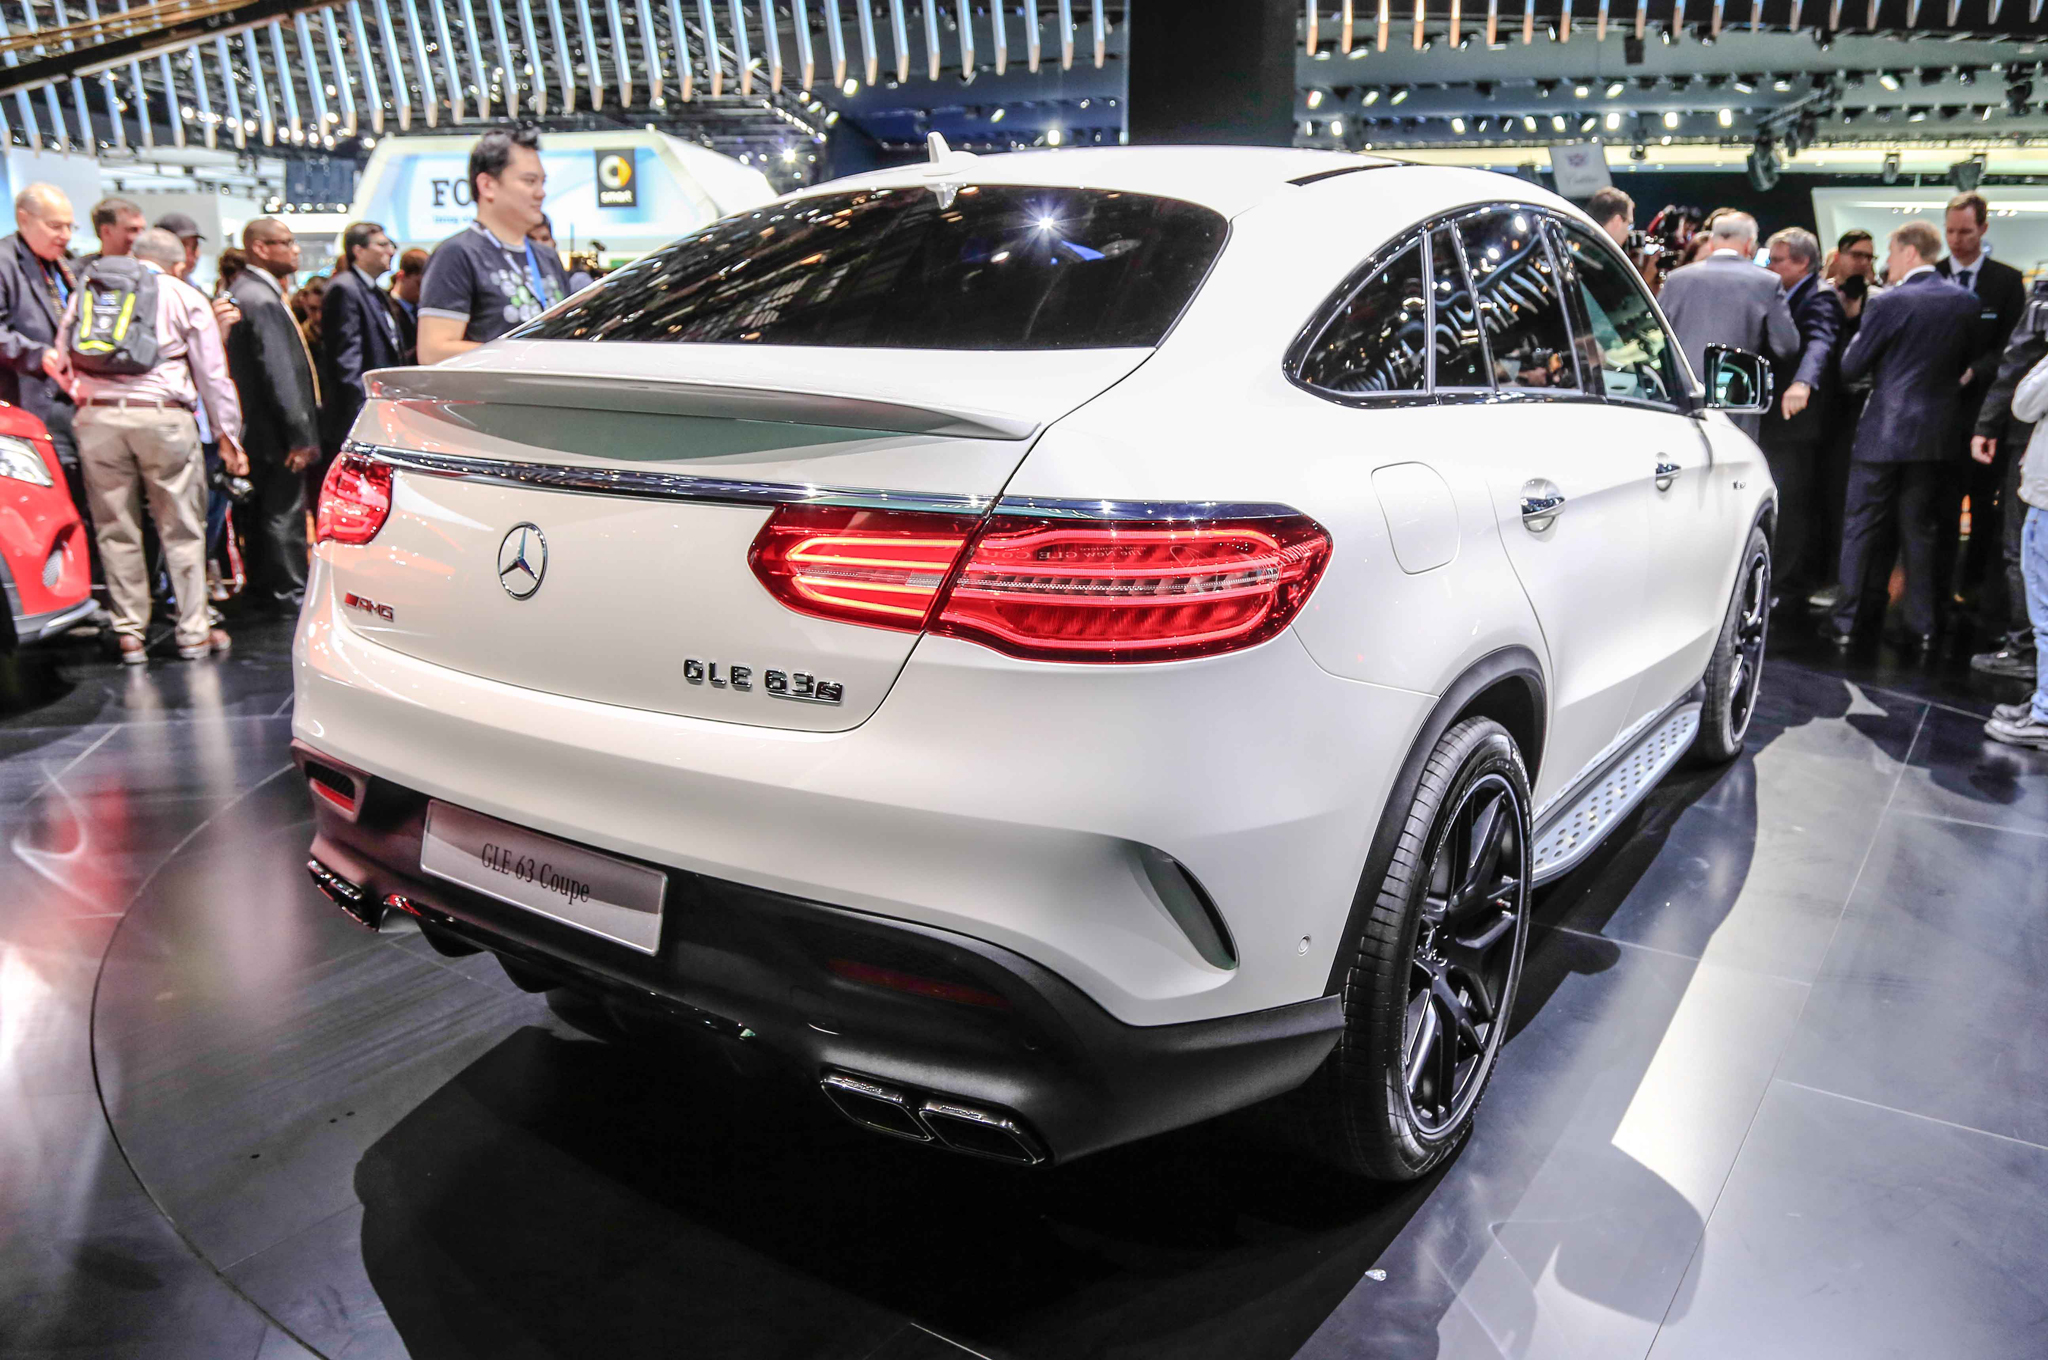 2016 Mercedes Benz Amg Gle63s Coupe Rear Side (Photo 6 of 8)